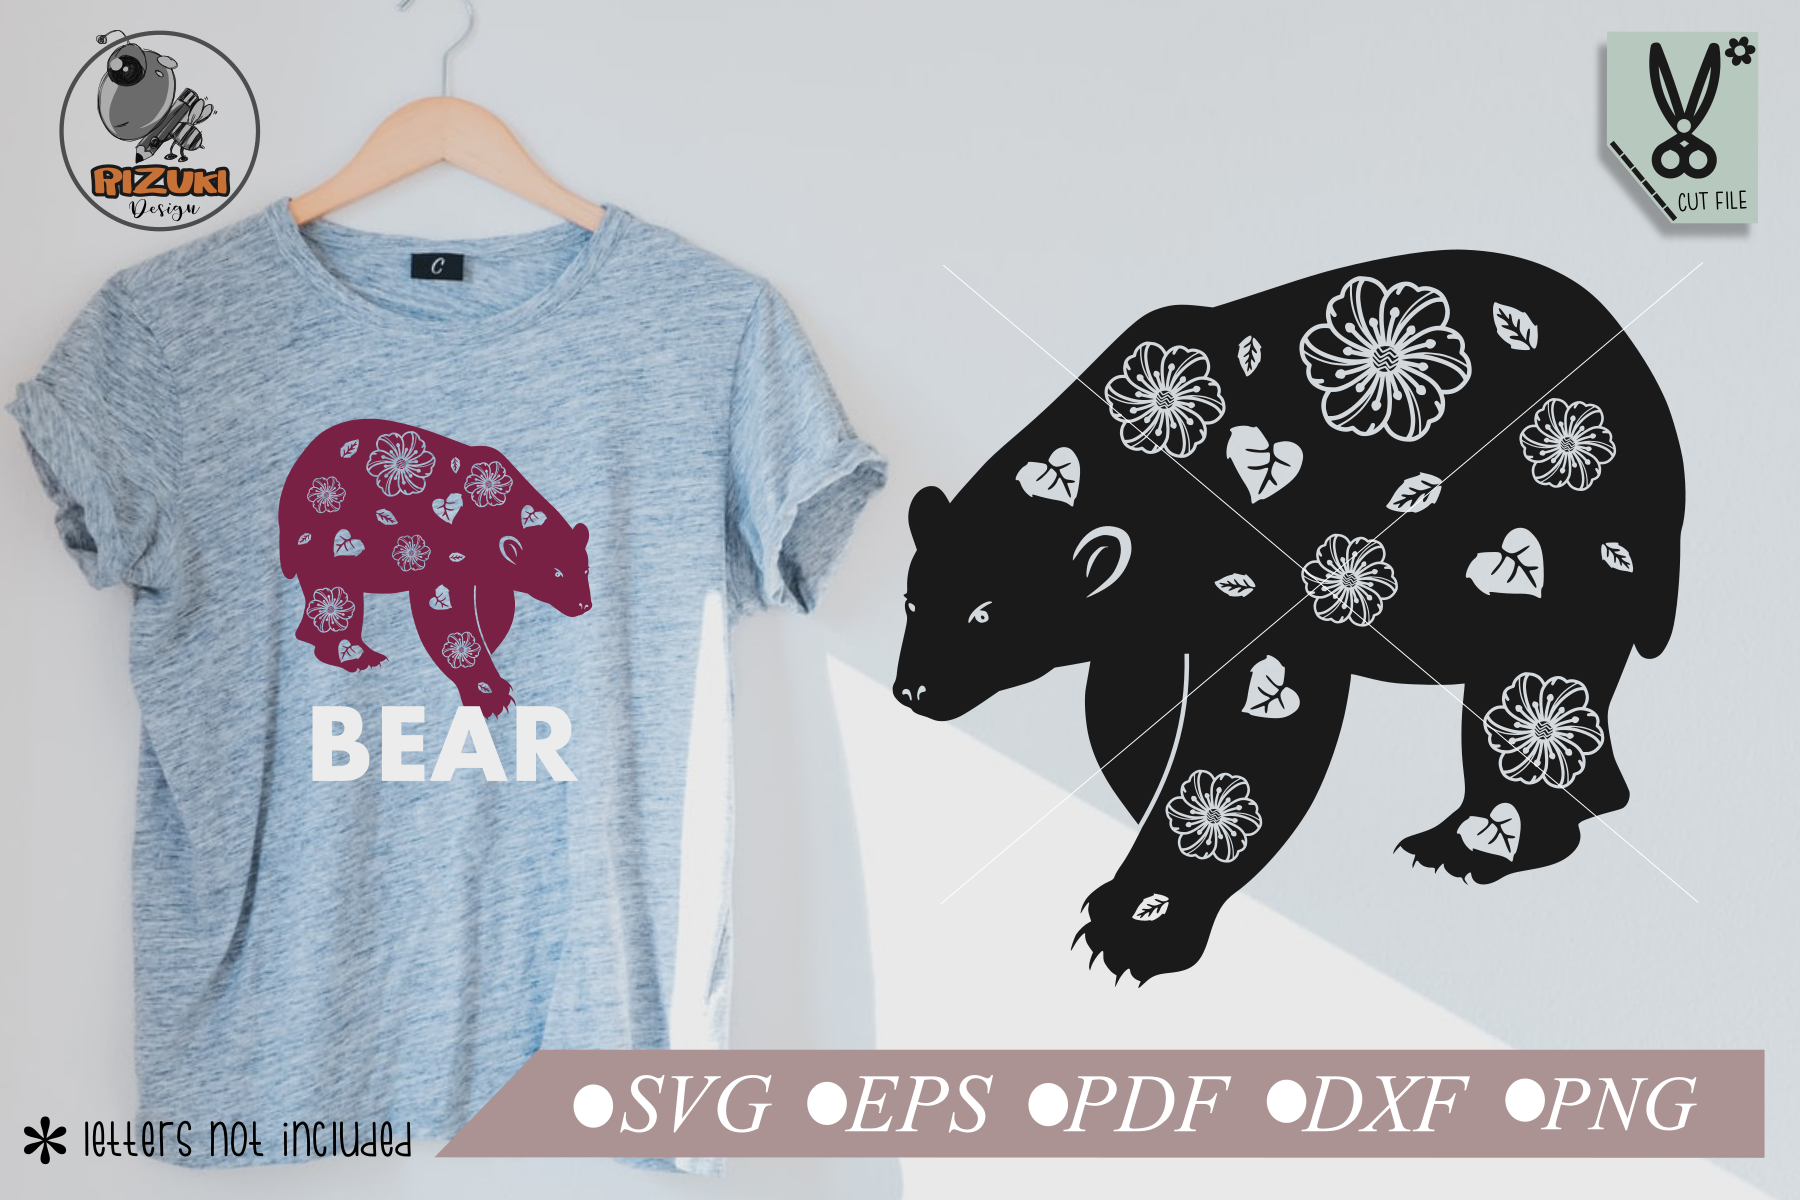 Download Free Bear With Carved Flowers And Leaves Graphic By Rizuki Store for Cricut Explore, Silhouette and other cutting machines.